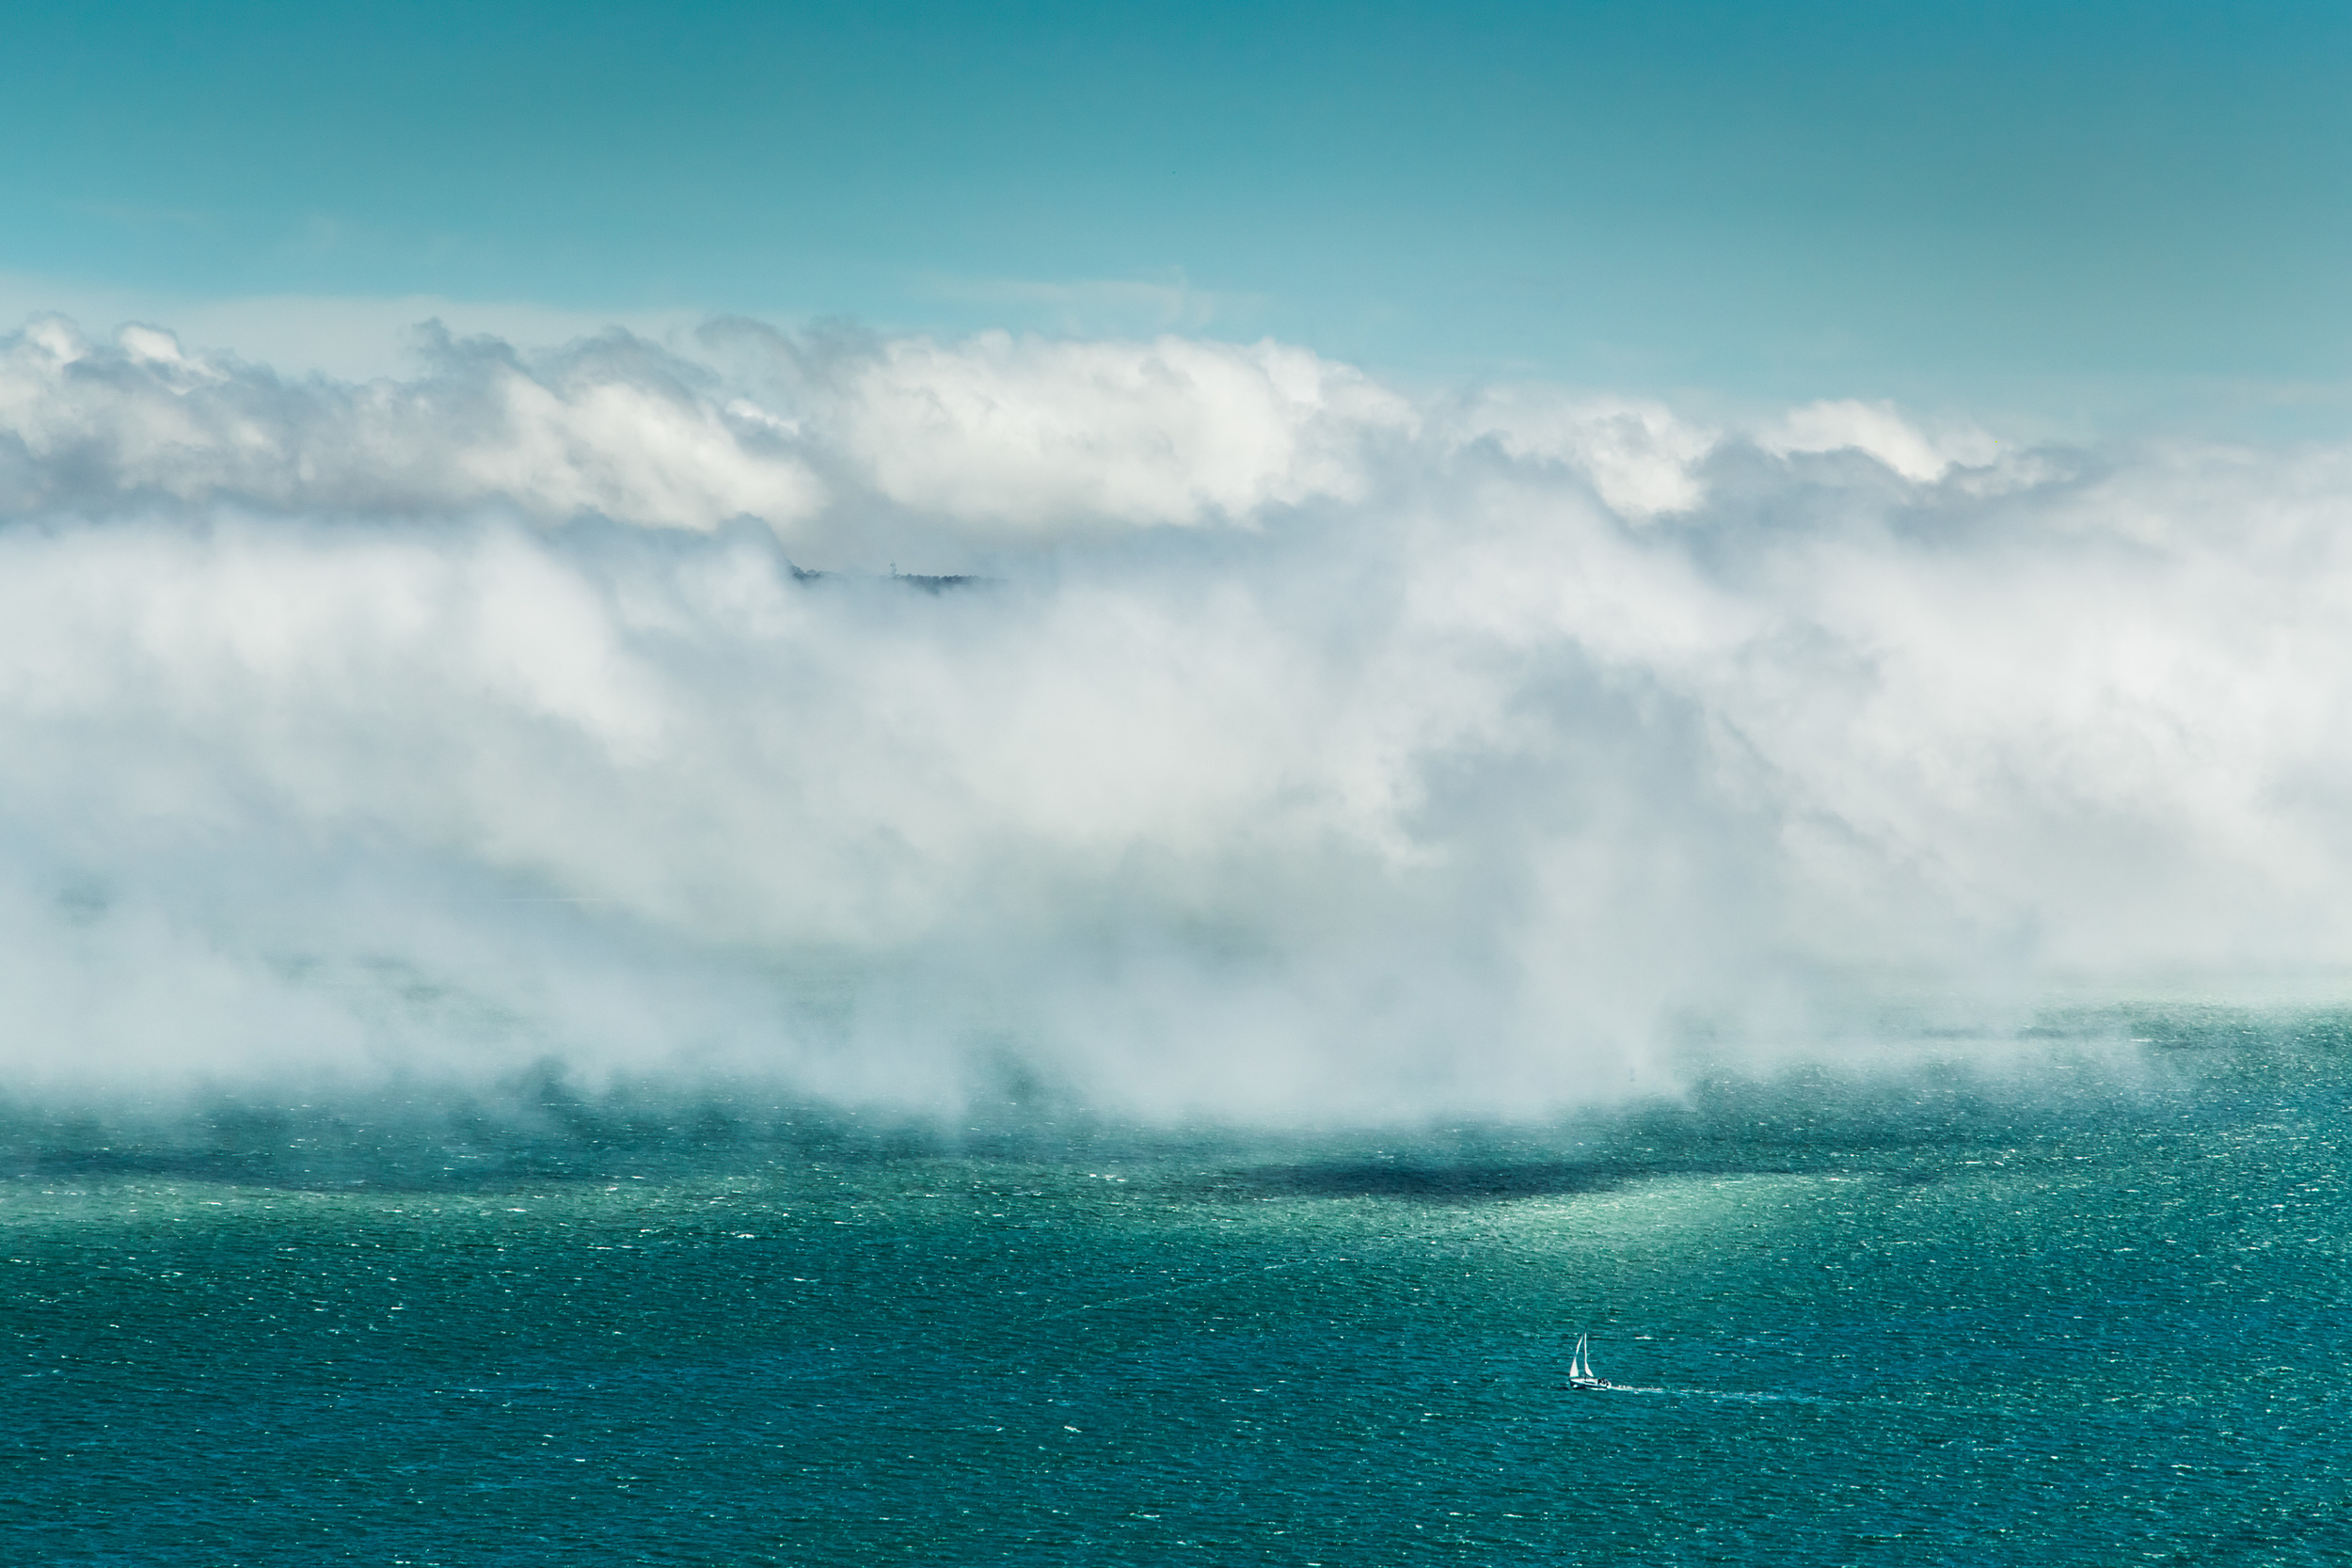 SAILING INTO THE UNKNOWN was a Finalist in Travel/Nature at Int'l Ozone Zone Photo Salon 2013